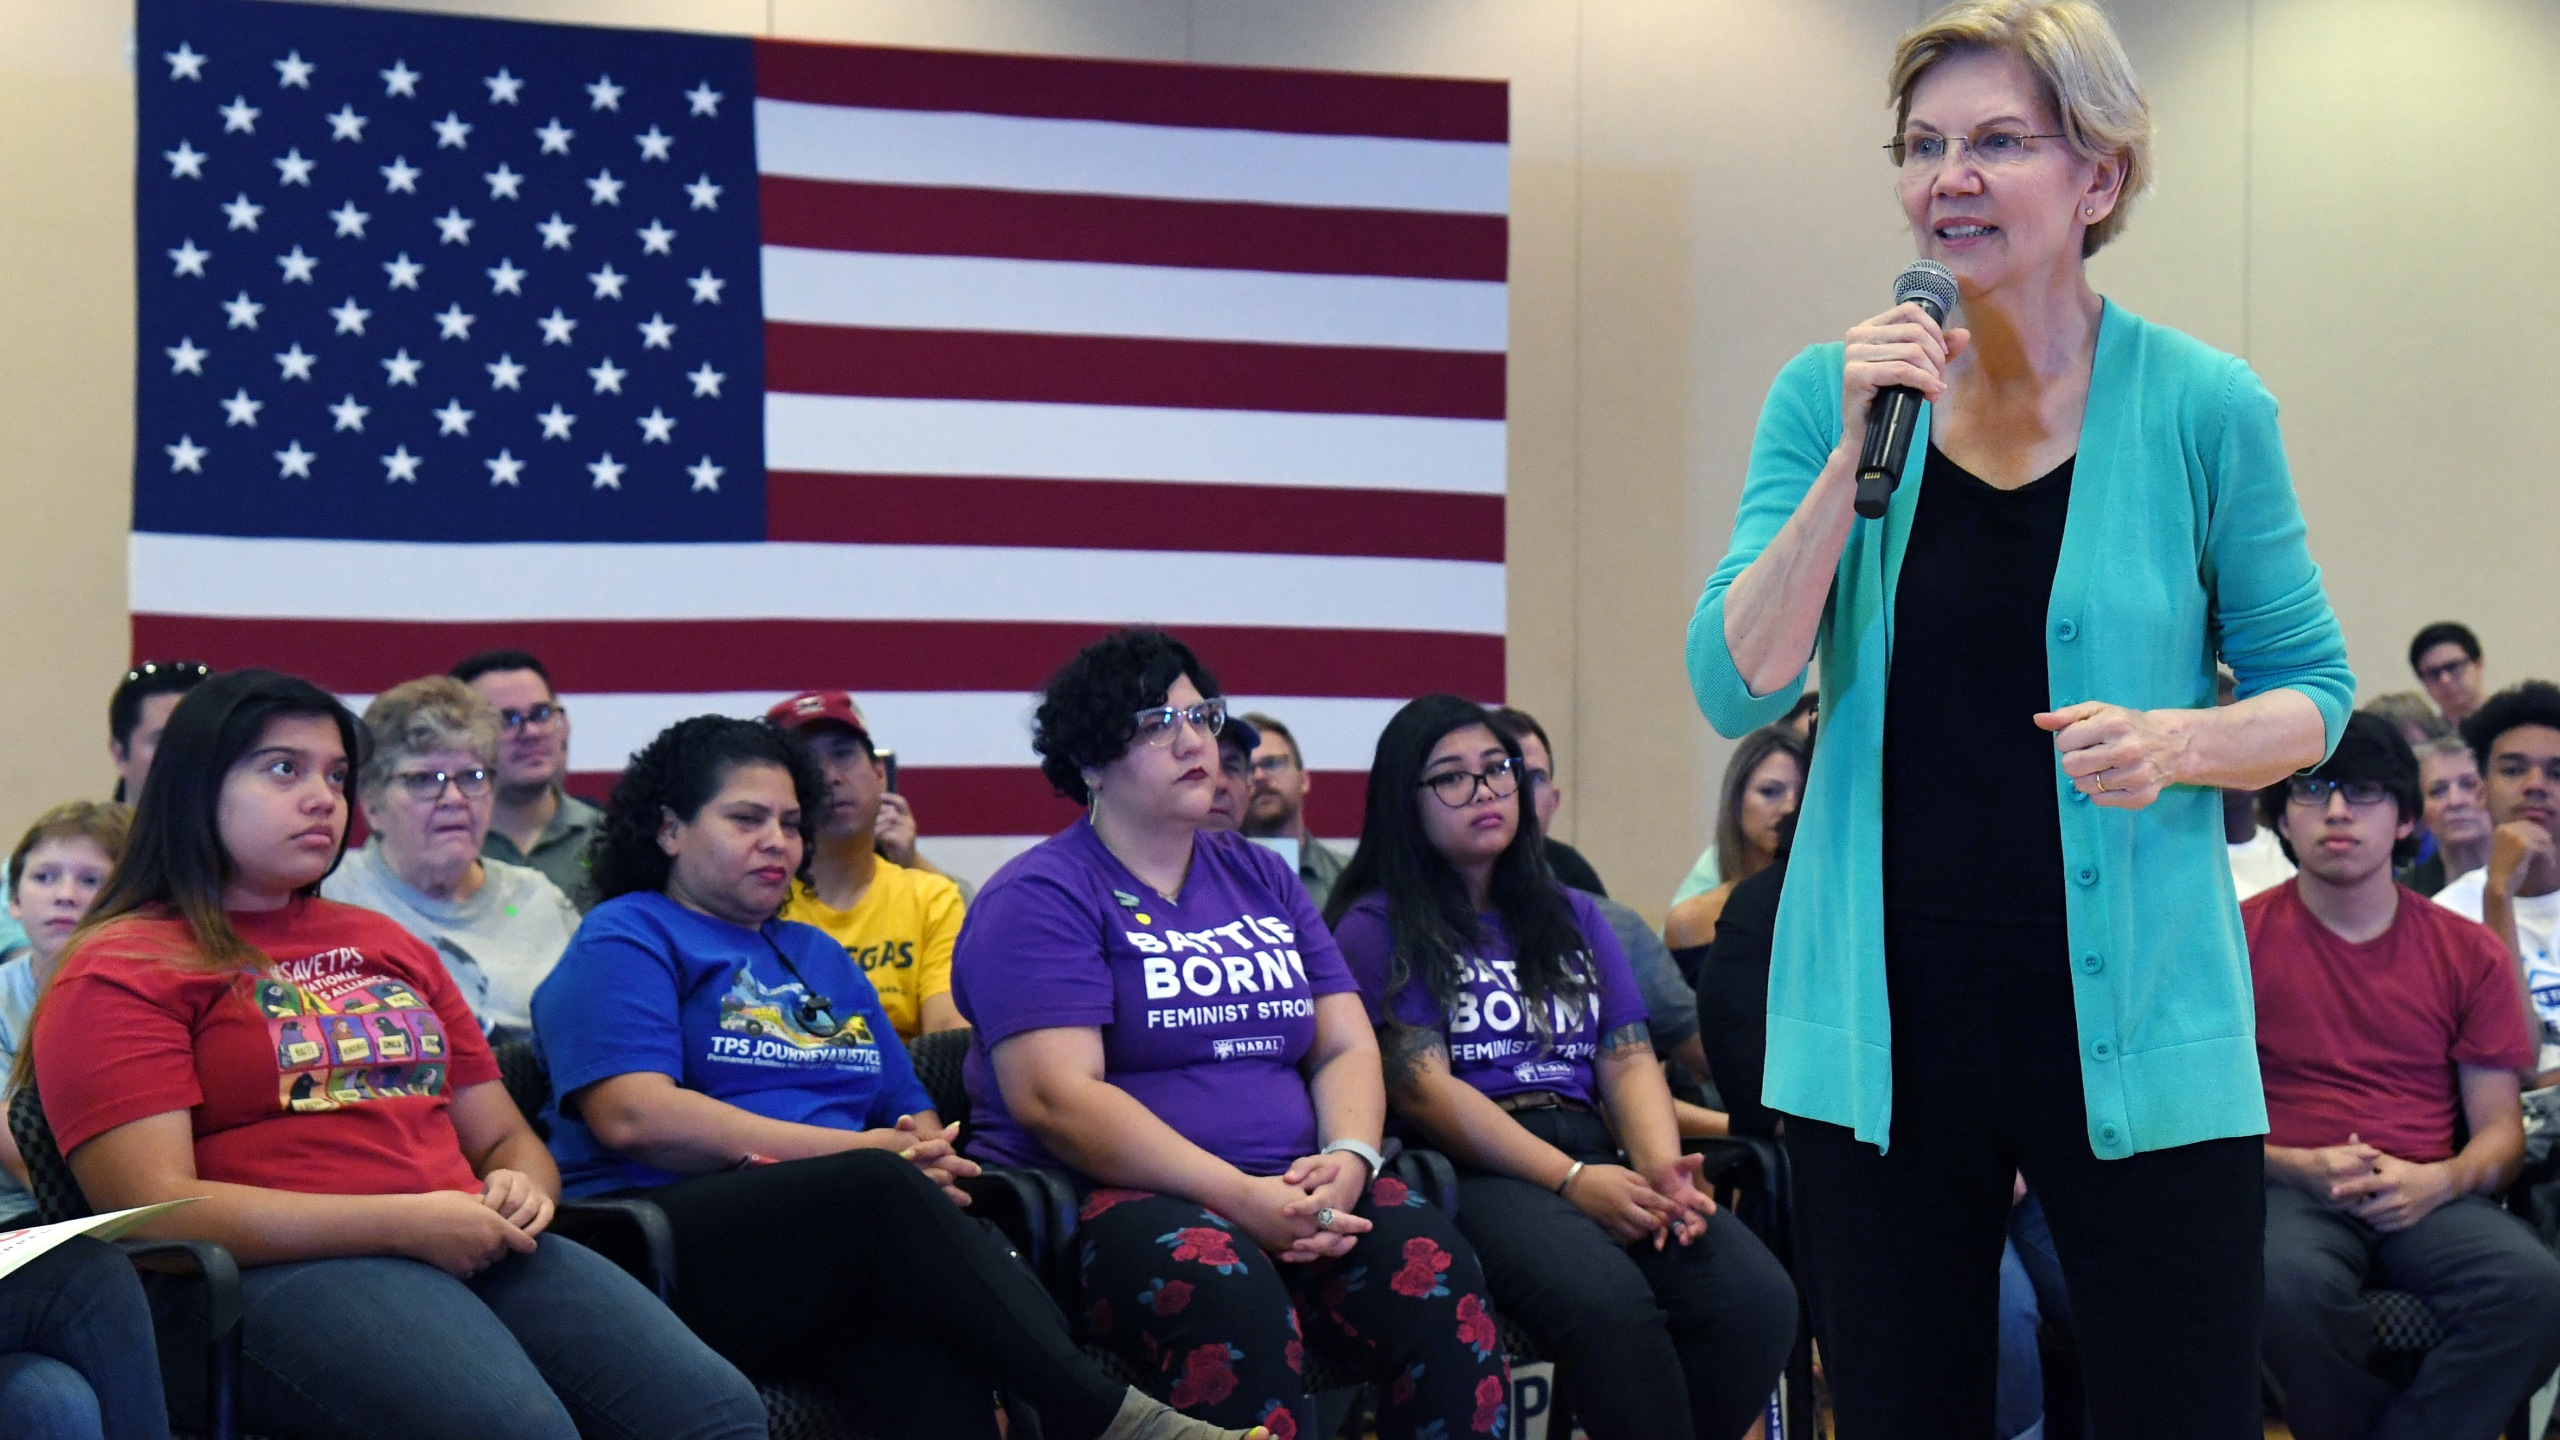 Democratic presidential candidate U.S. Sen. Elizabeth Warren (D-MA) speaks during a community conversation at the East Las Vegas Community Center on July 2, 2019. (Credit: Ethan Miller/Getty Images)